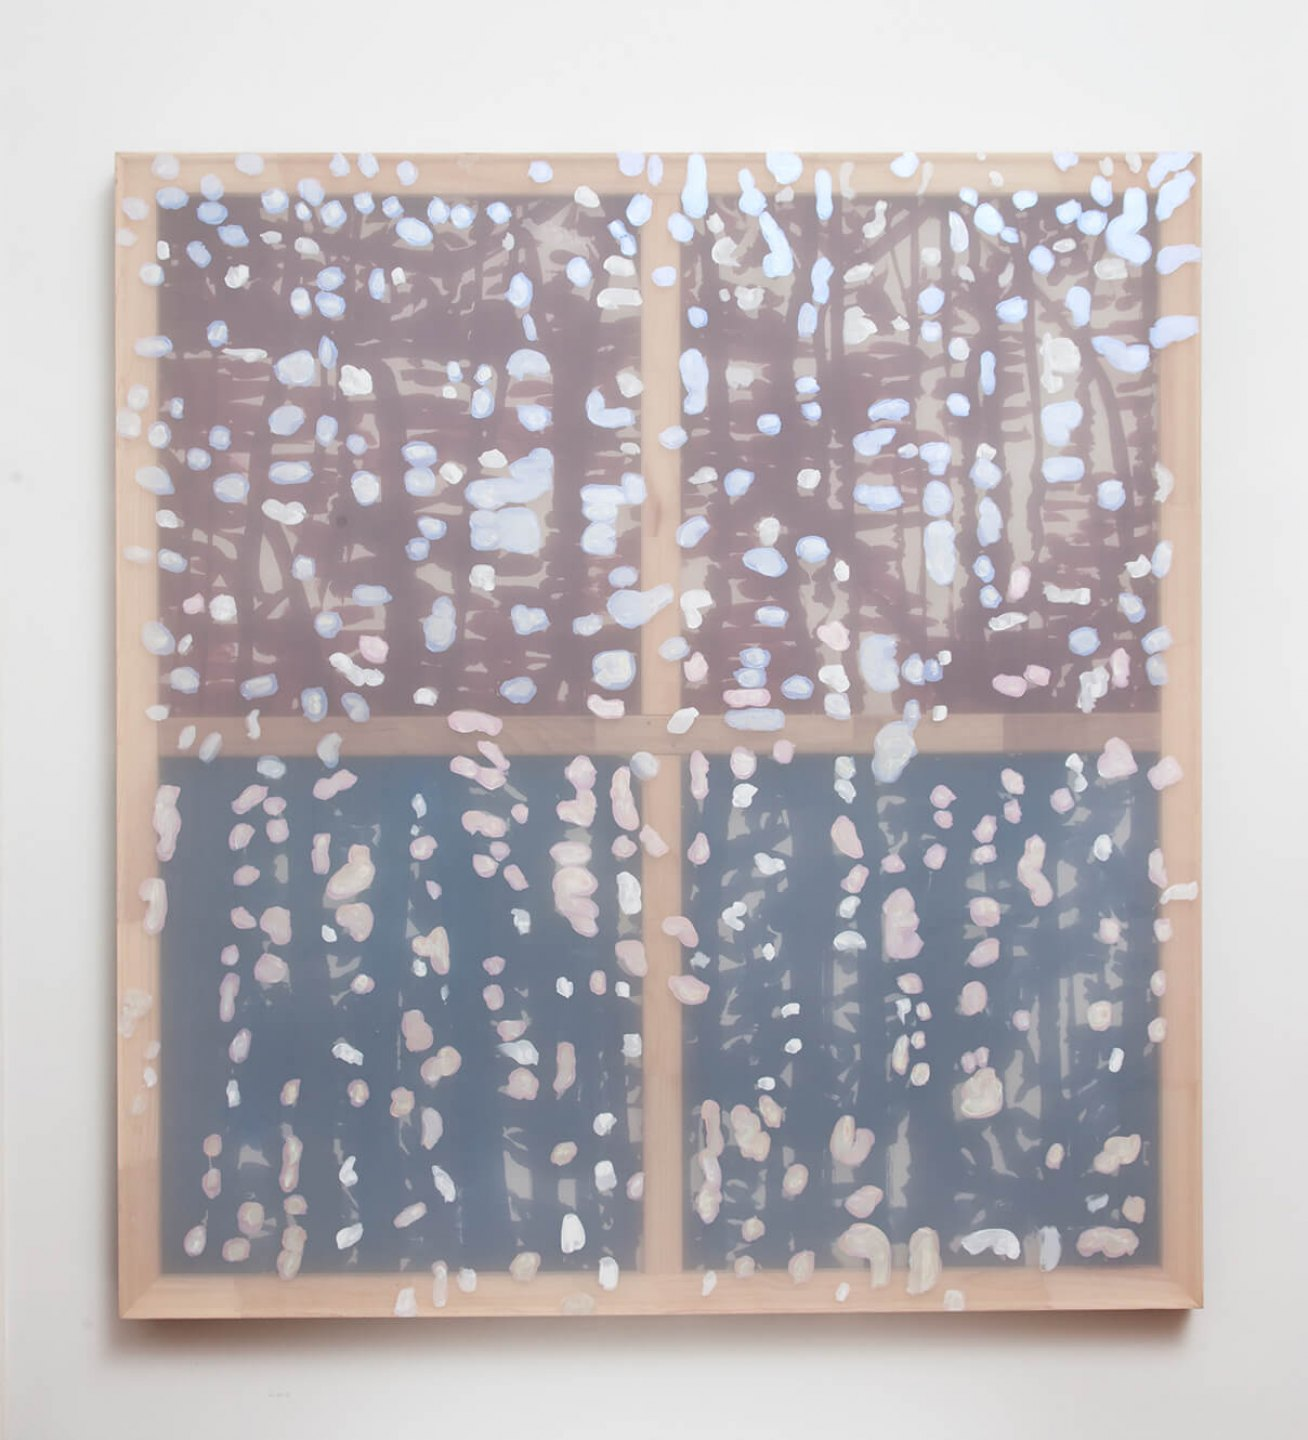 Marina Perez Simão, <em>Untitled,</em> 2012<em>, </em>acrylic and iridescent pigment on polyester and paper overlay, 74,4&nbsp;× 69,6 inches - Mendes Wood DM